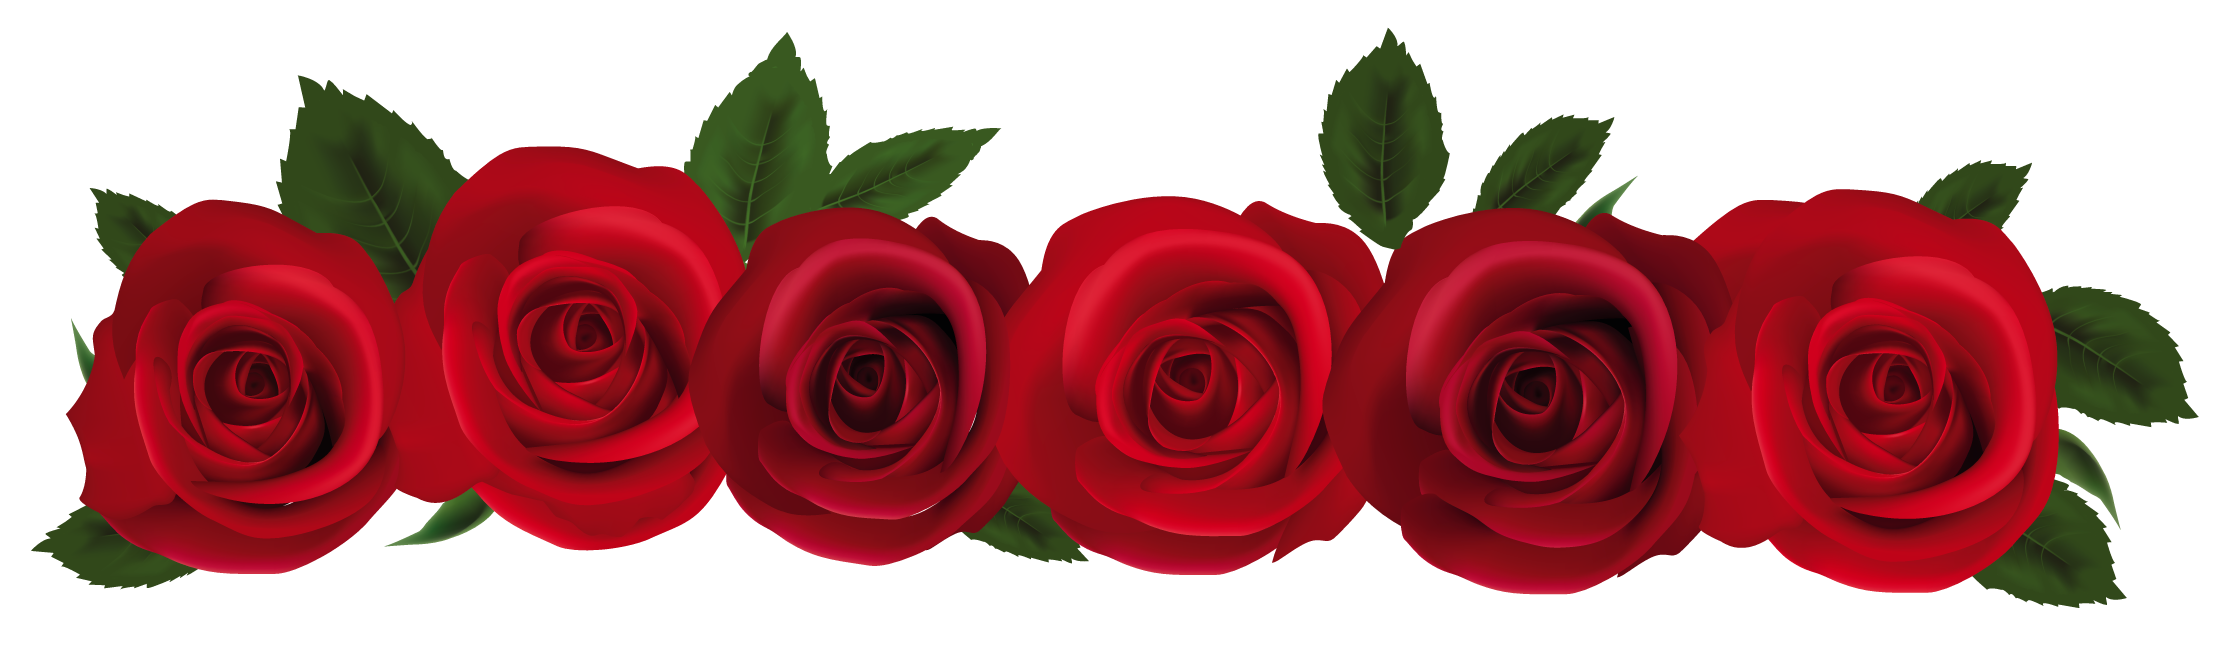 Red clipart rose #8